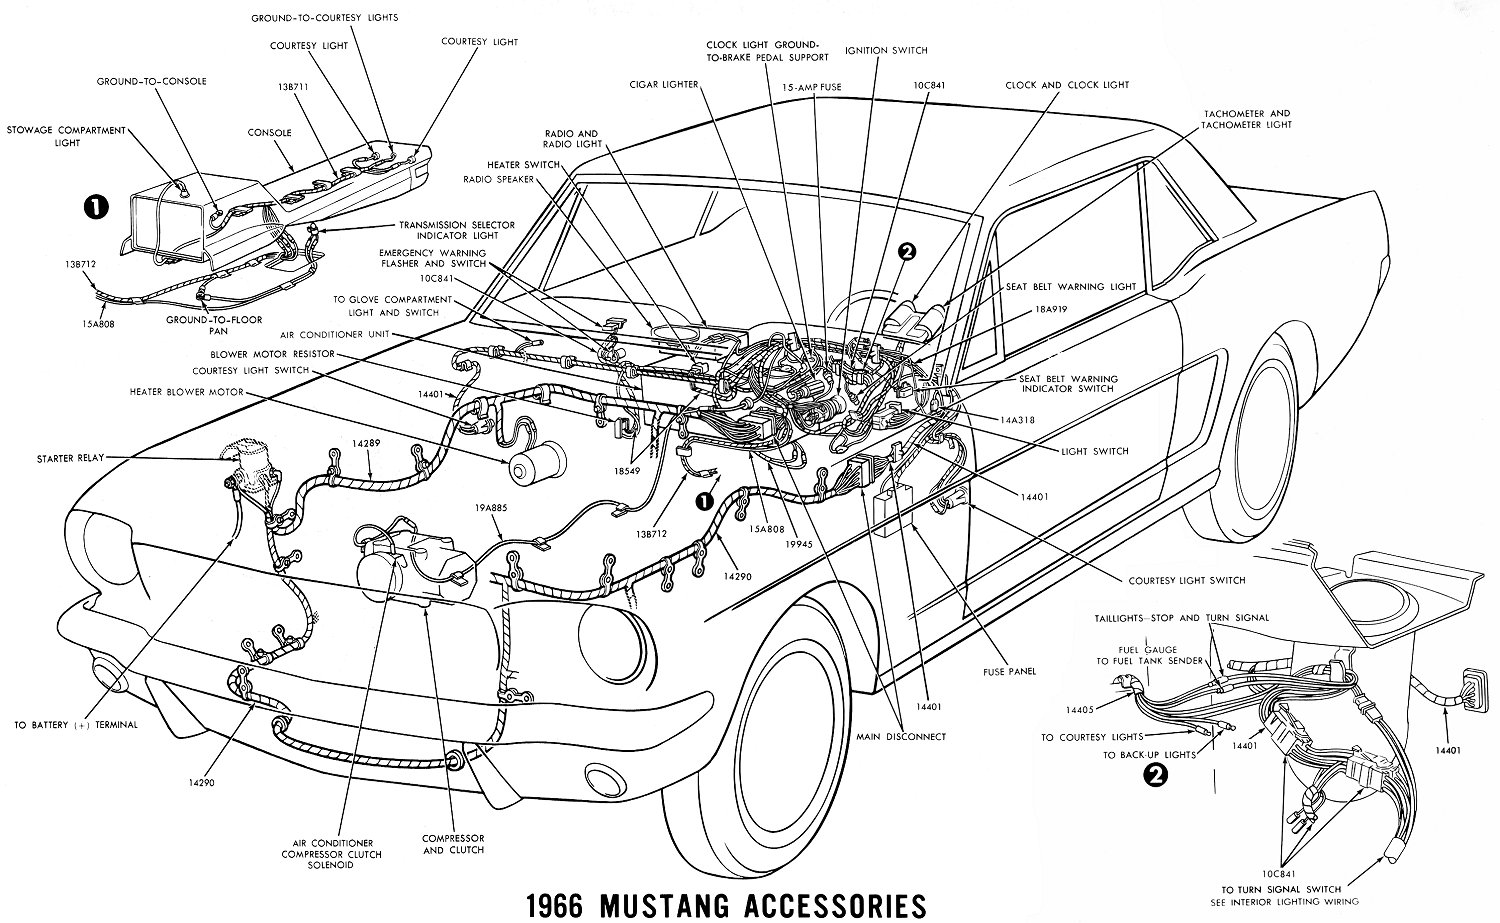 1966 mustang fuel gauge wiring 1966 mustang under dash wiring diagram 1966 mustang wiring diagrams - average joe restoration